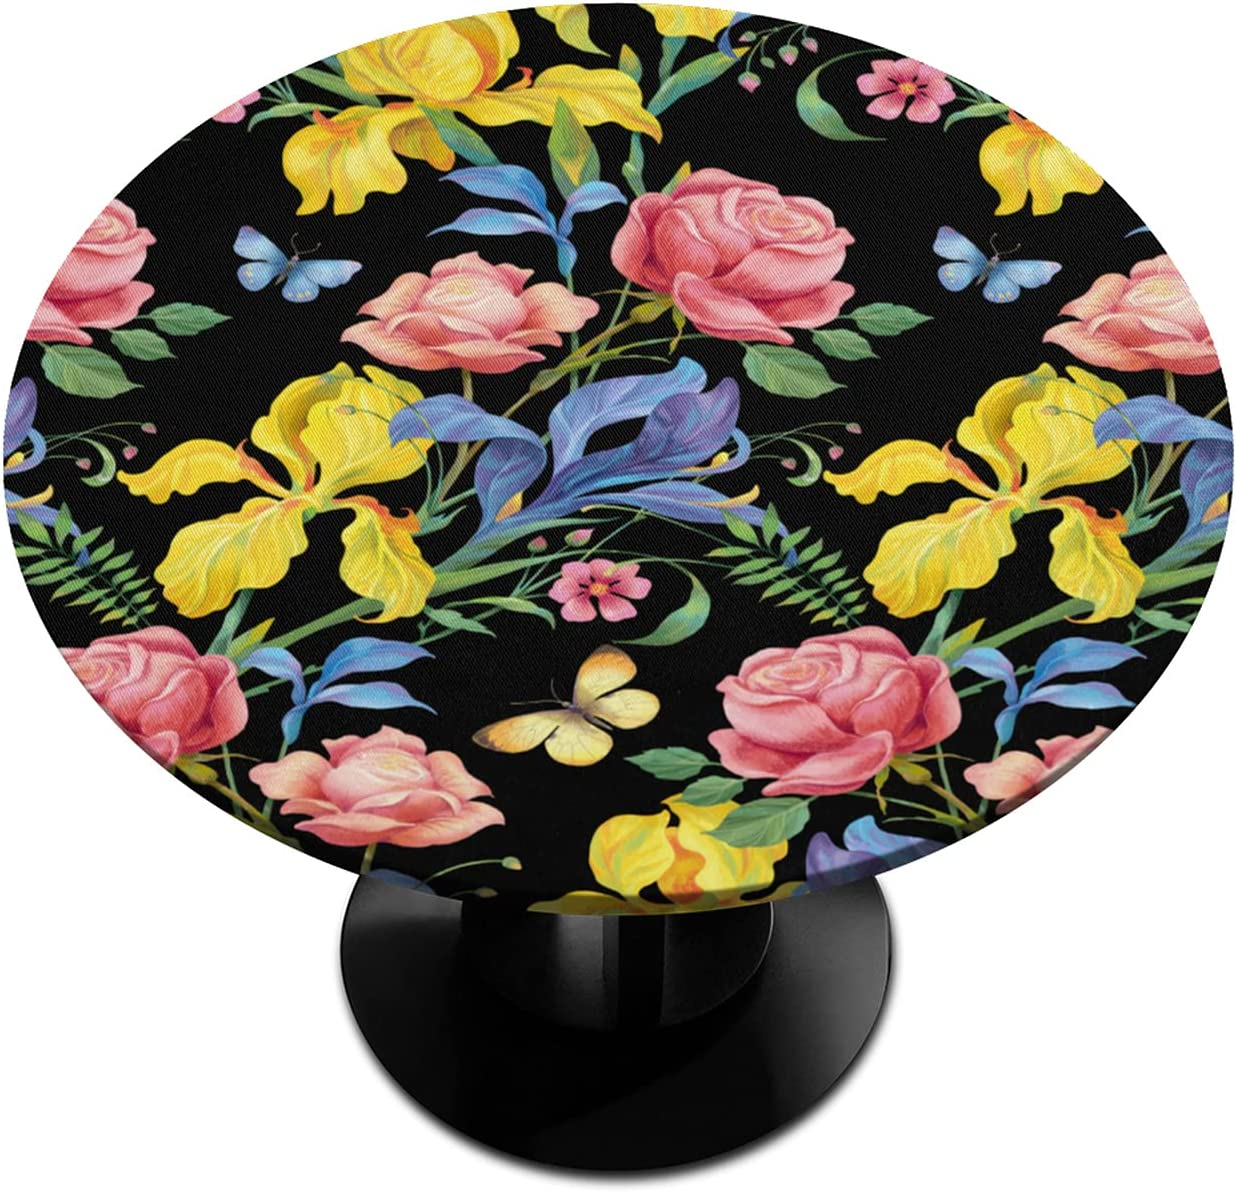 Round Fitted Albuquerque Mall Tablecloth Flower Floral Sales of SALE items from new works Elastic Ed Rose Butterfly